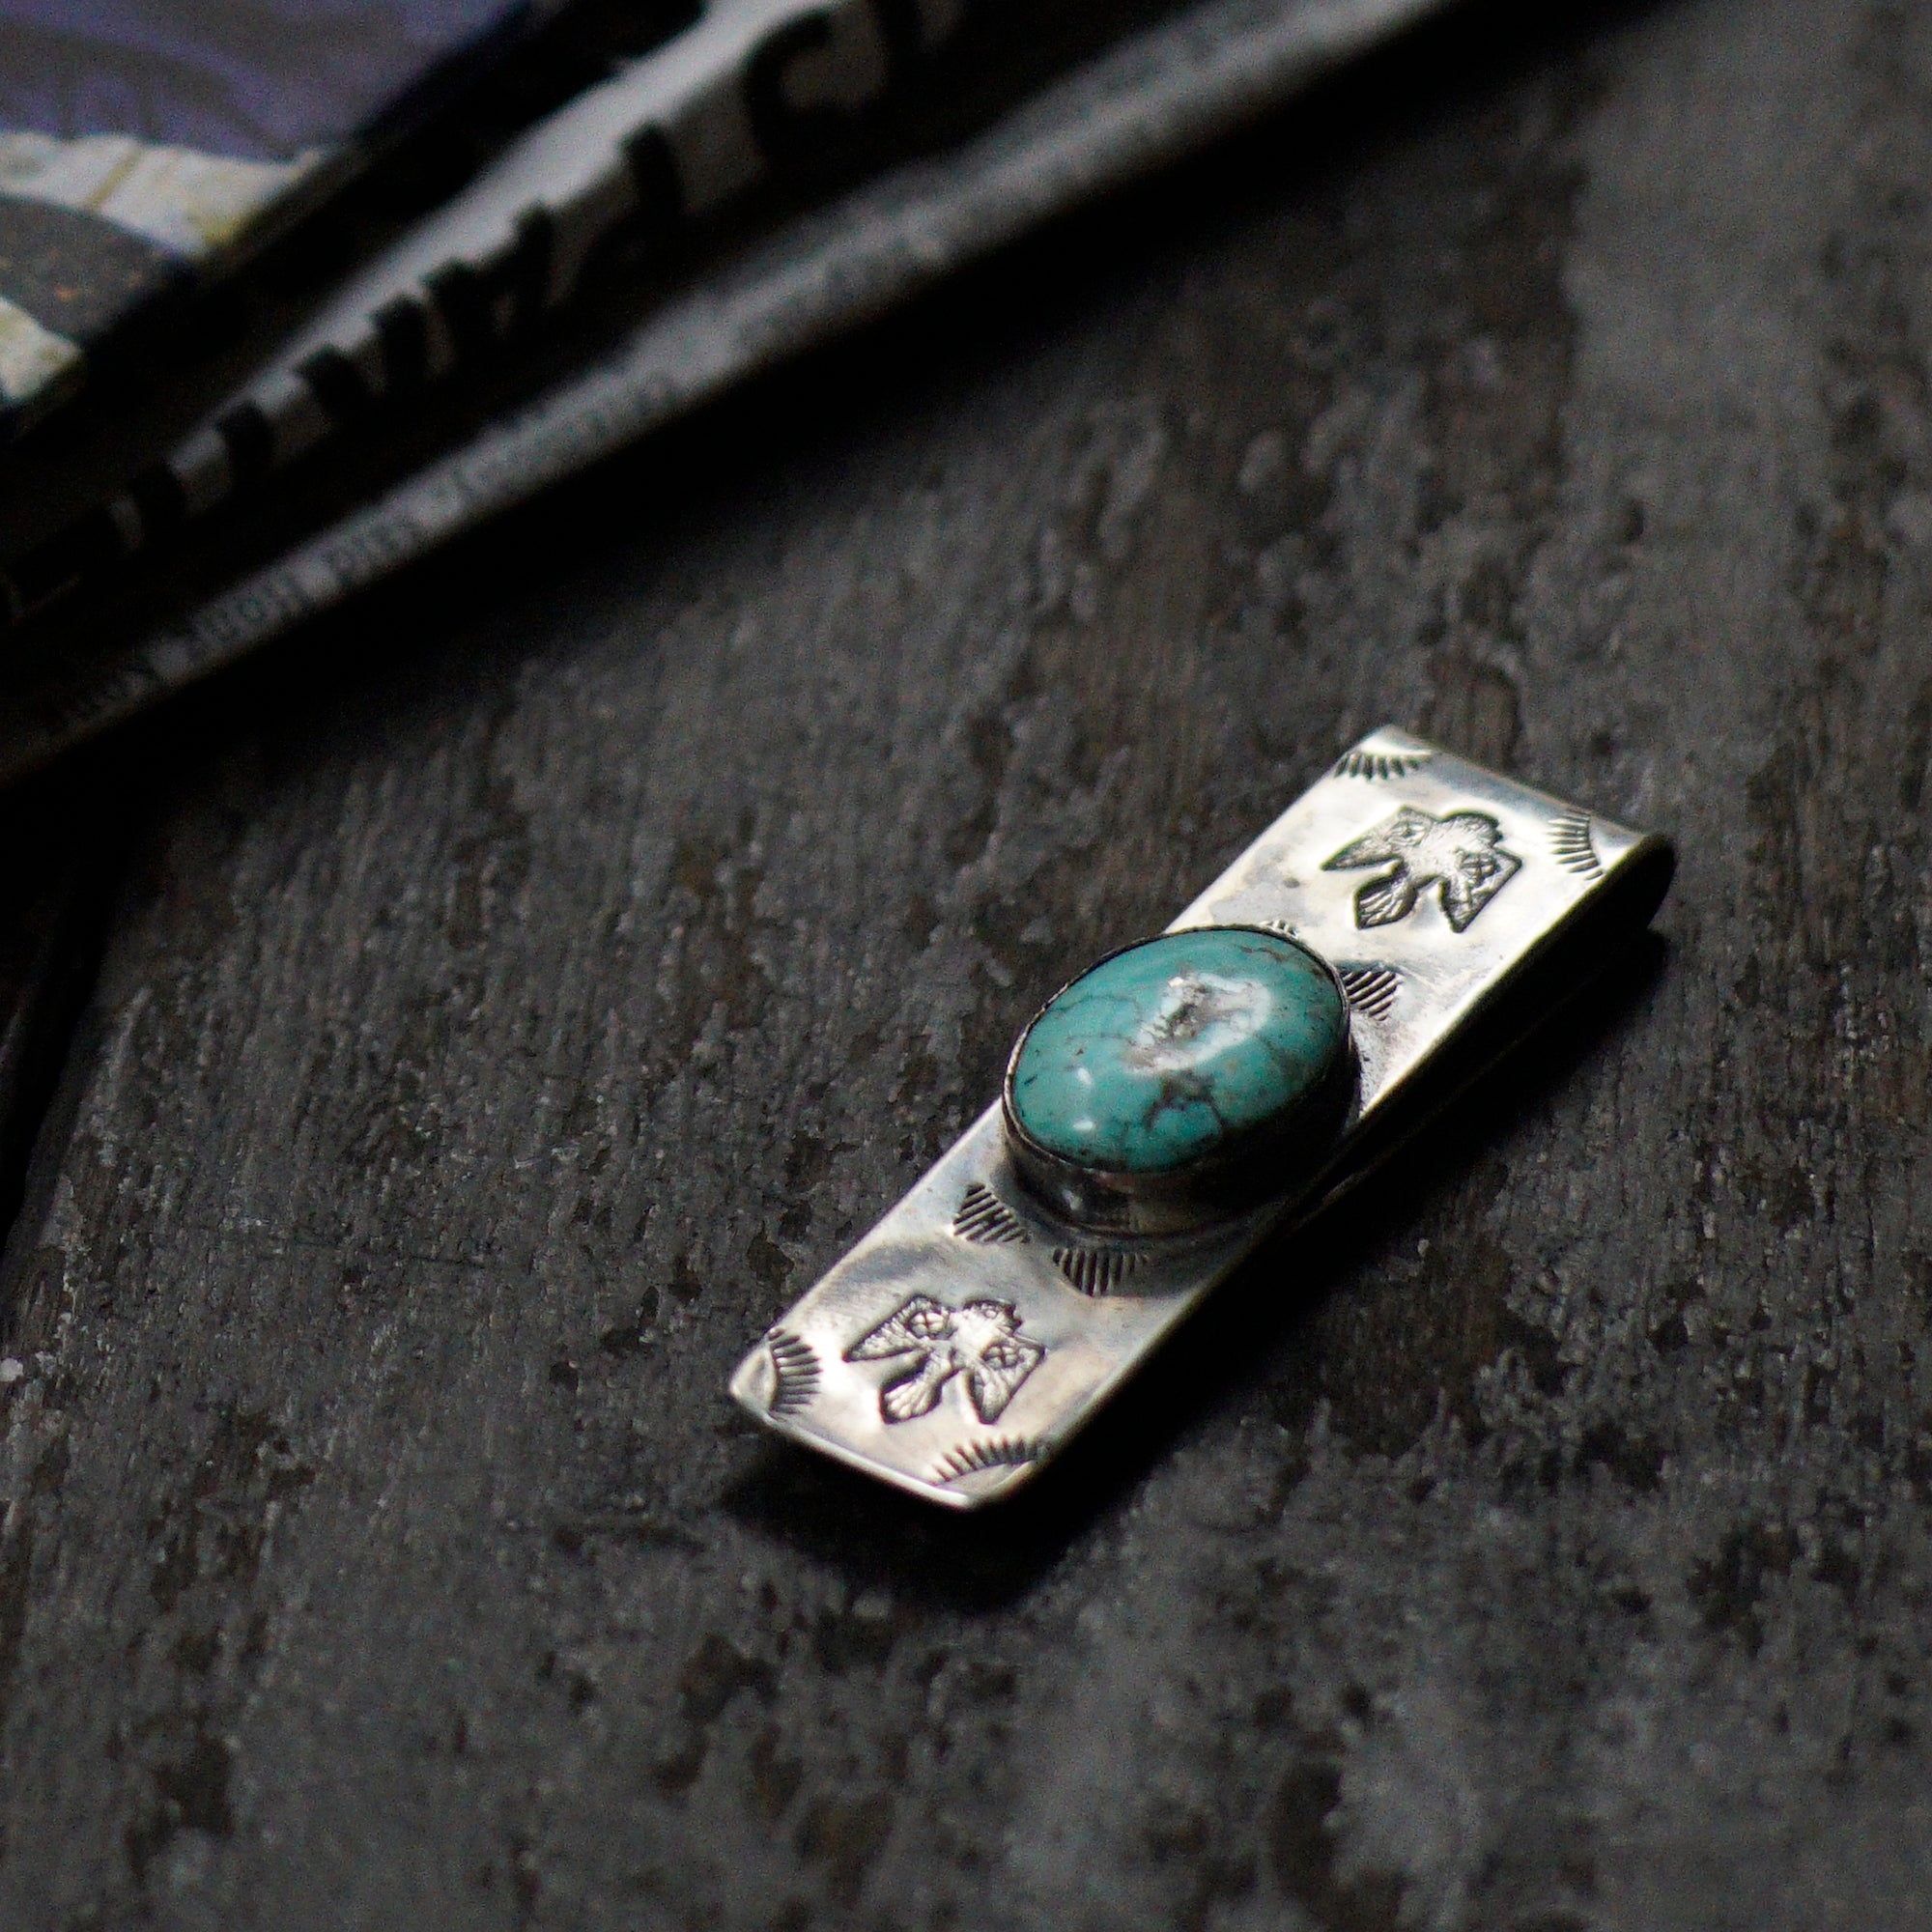 SPECIAL - Red Rabbit Ingot Silver Money Clip with Thunderbird & Sunrays Stamping and Oval Turquoise Stone (RRMC08)